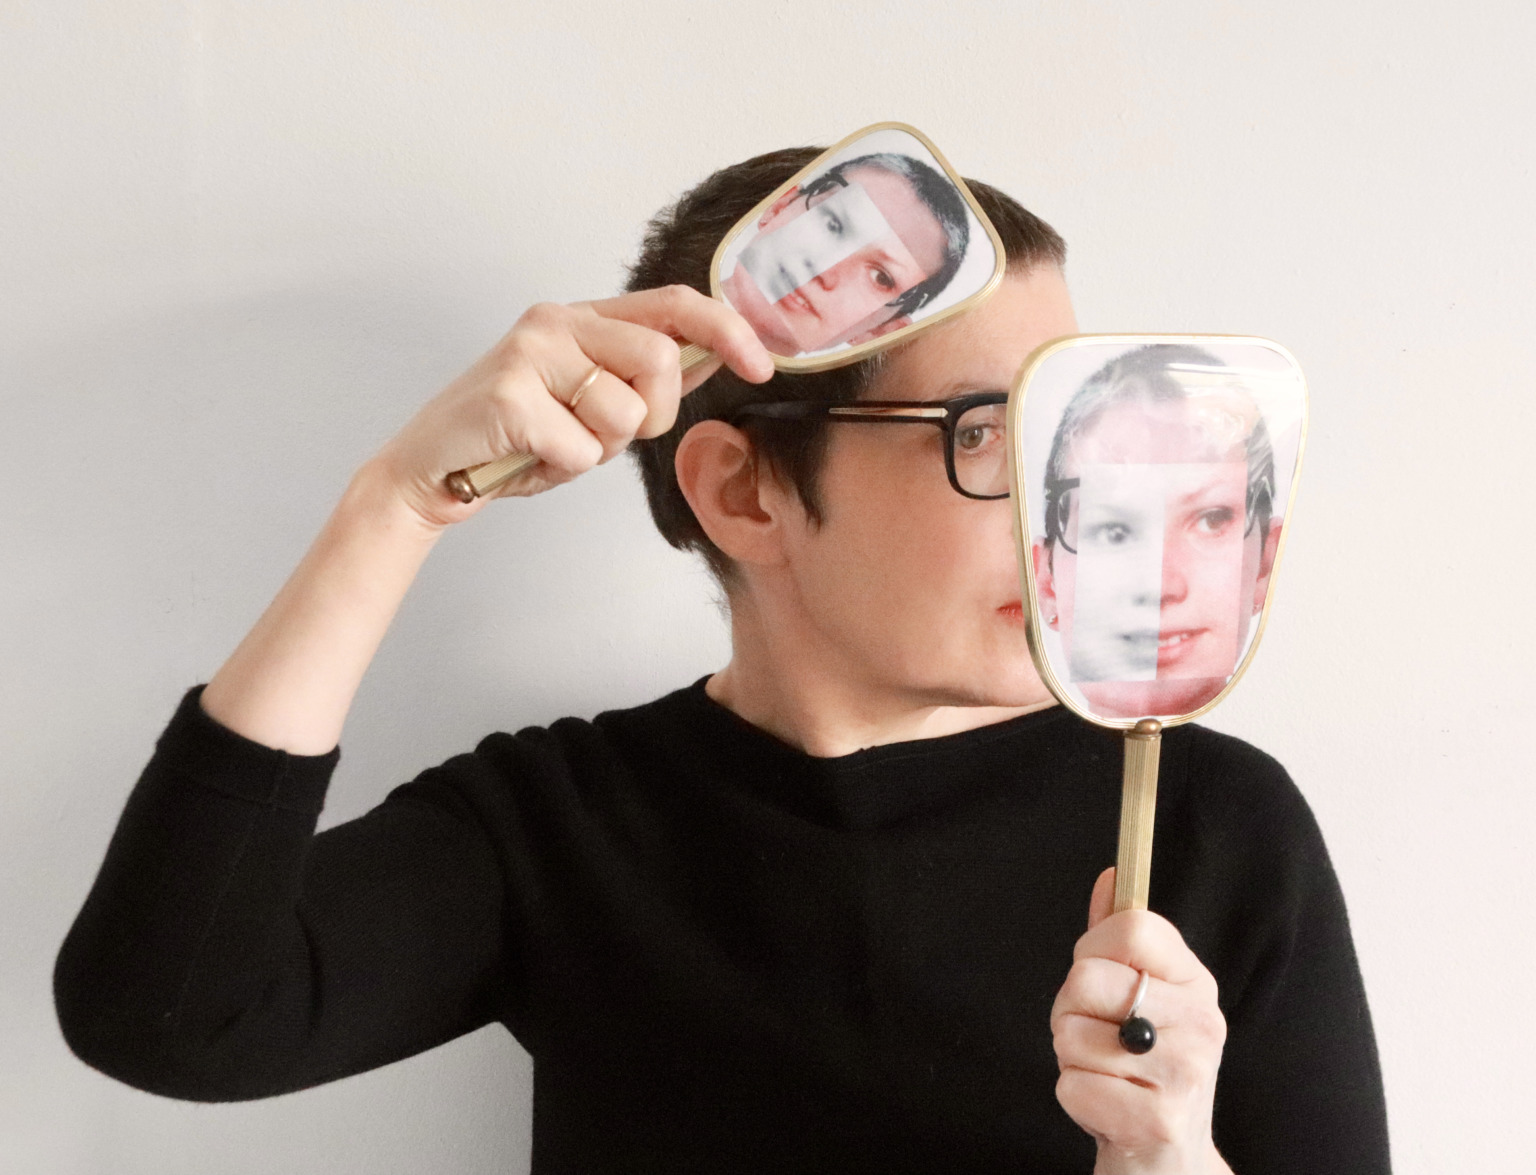 Sonia Boue wearing a black jumper brushing her hair and looking in a small handheld vanity mirror. Both brush and mirror are collaged with photographs of Boue's face.